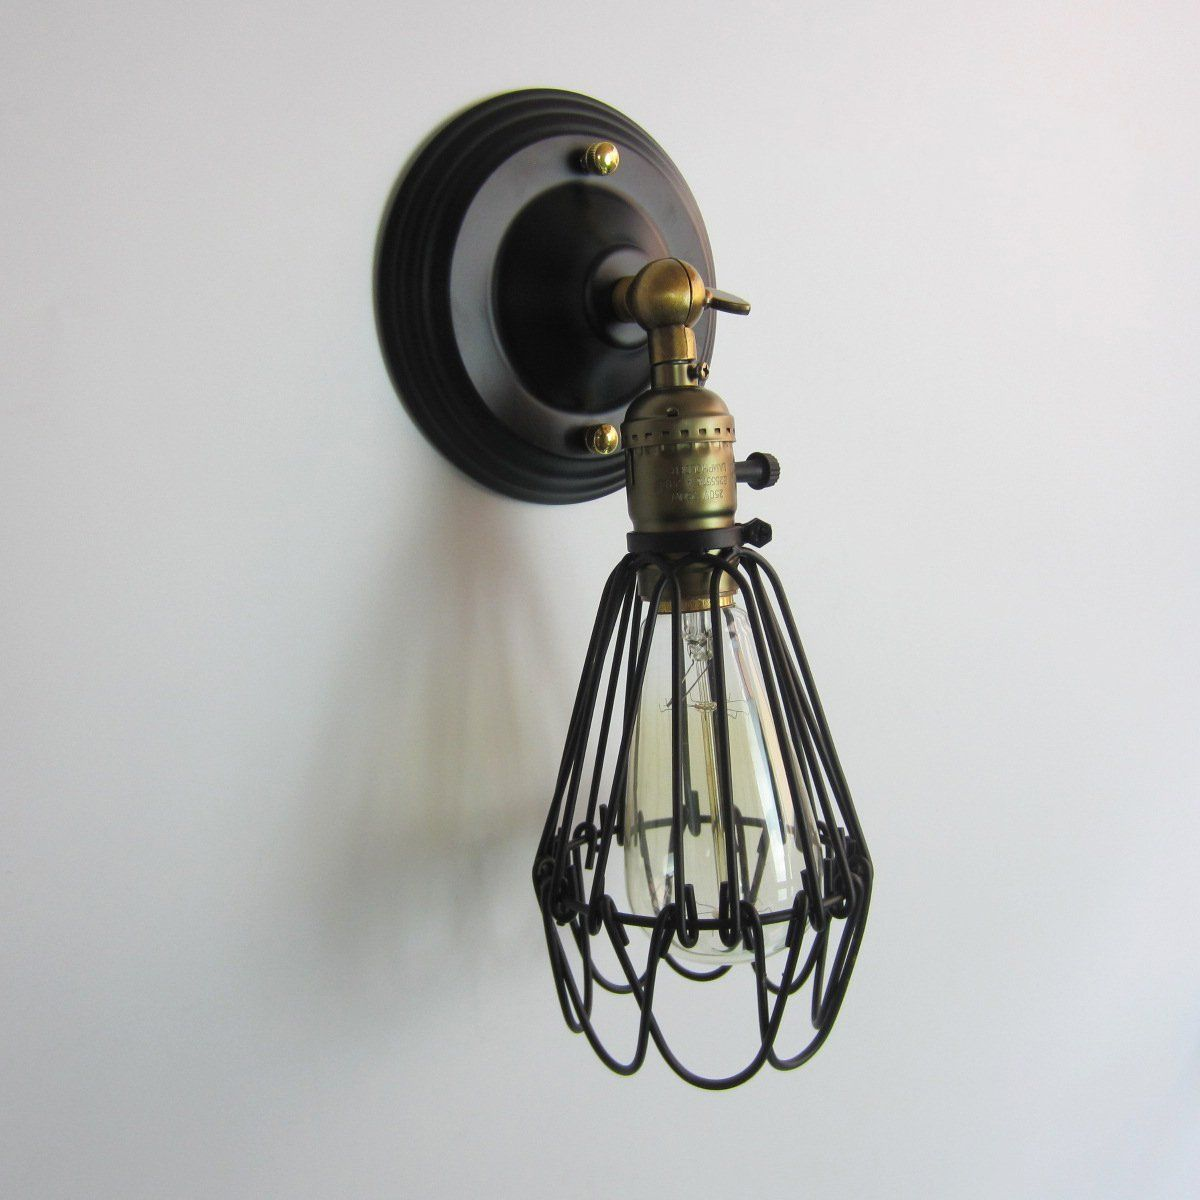 E26e27 industrial vintage style iron birdcage lampshade wire cage e26e27 industrial vintage style iron birdcage lampshade wire cage lamp hanging rustic metal shade wall lamp fixture bronze black add bronze click on greentooth Image collections